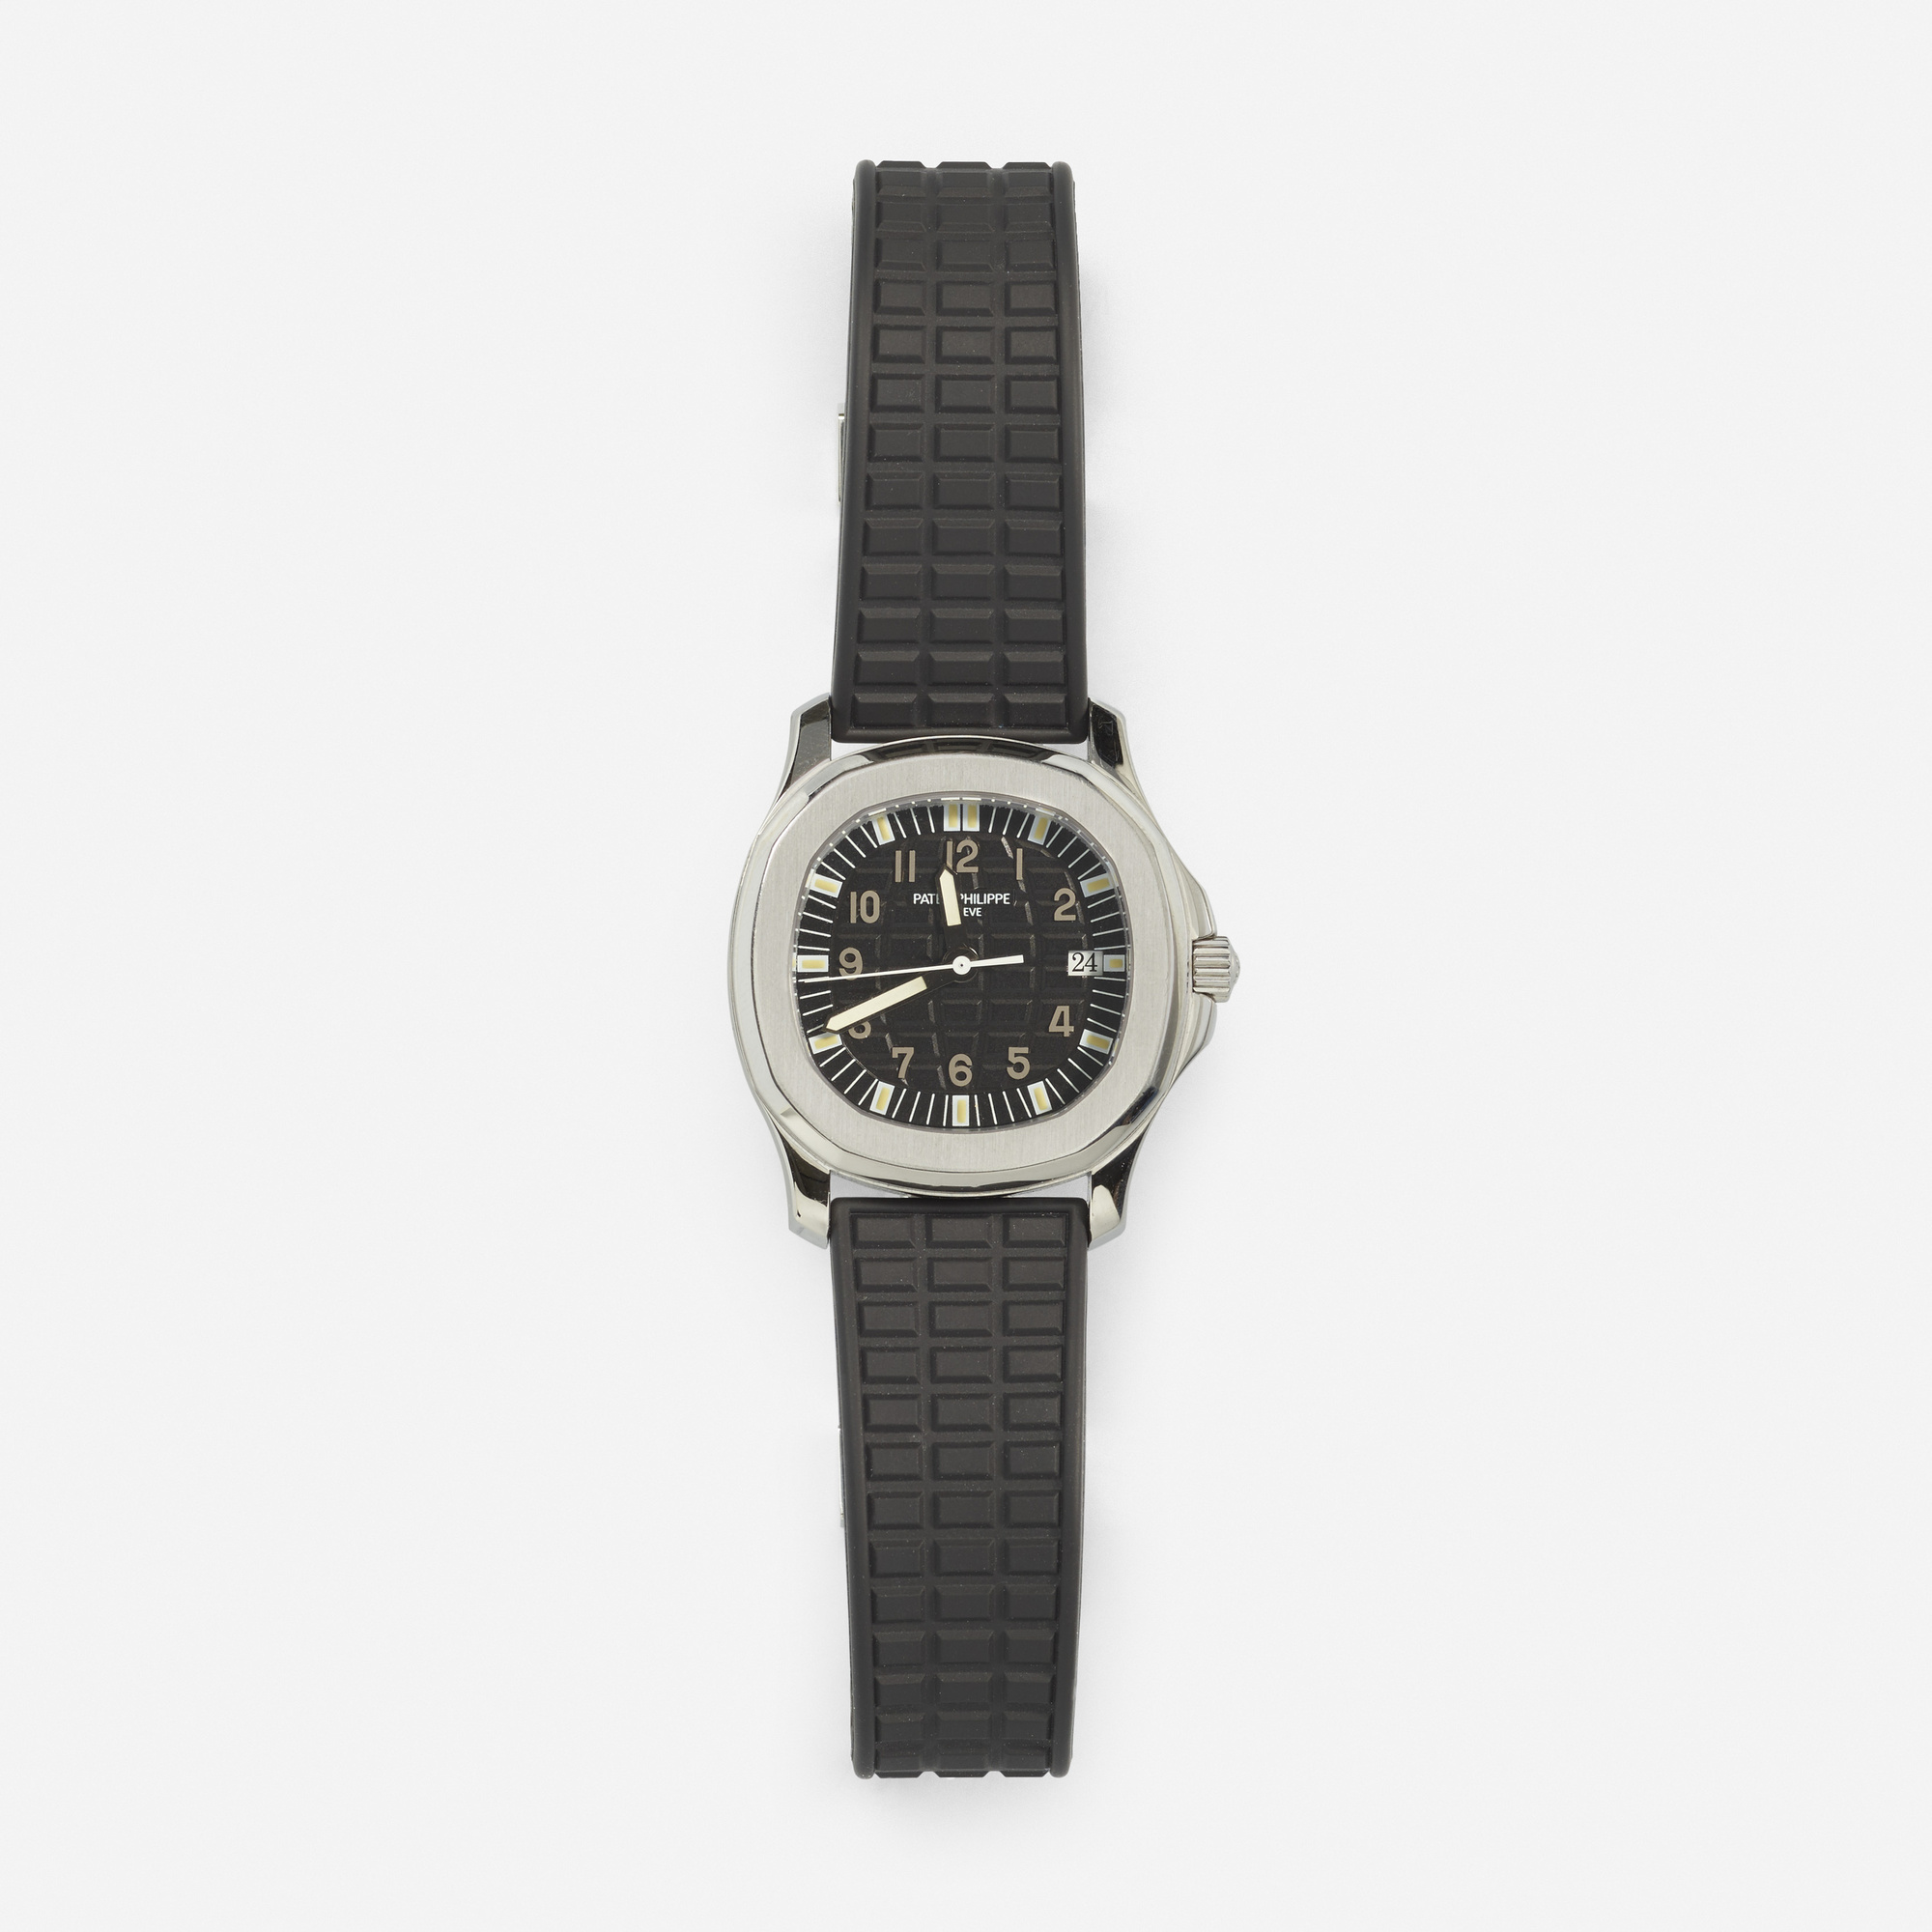 302: Patek Philippe / A steel and rubber Aquanaut watch (1 of 1)